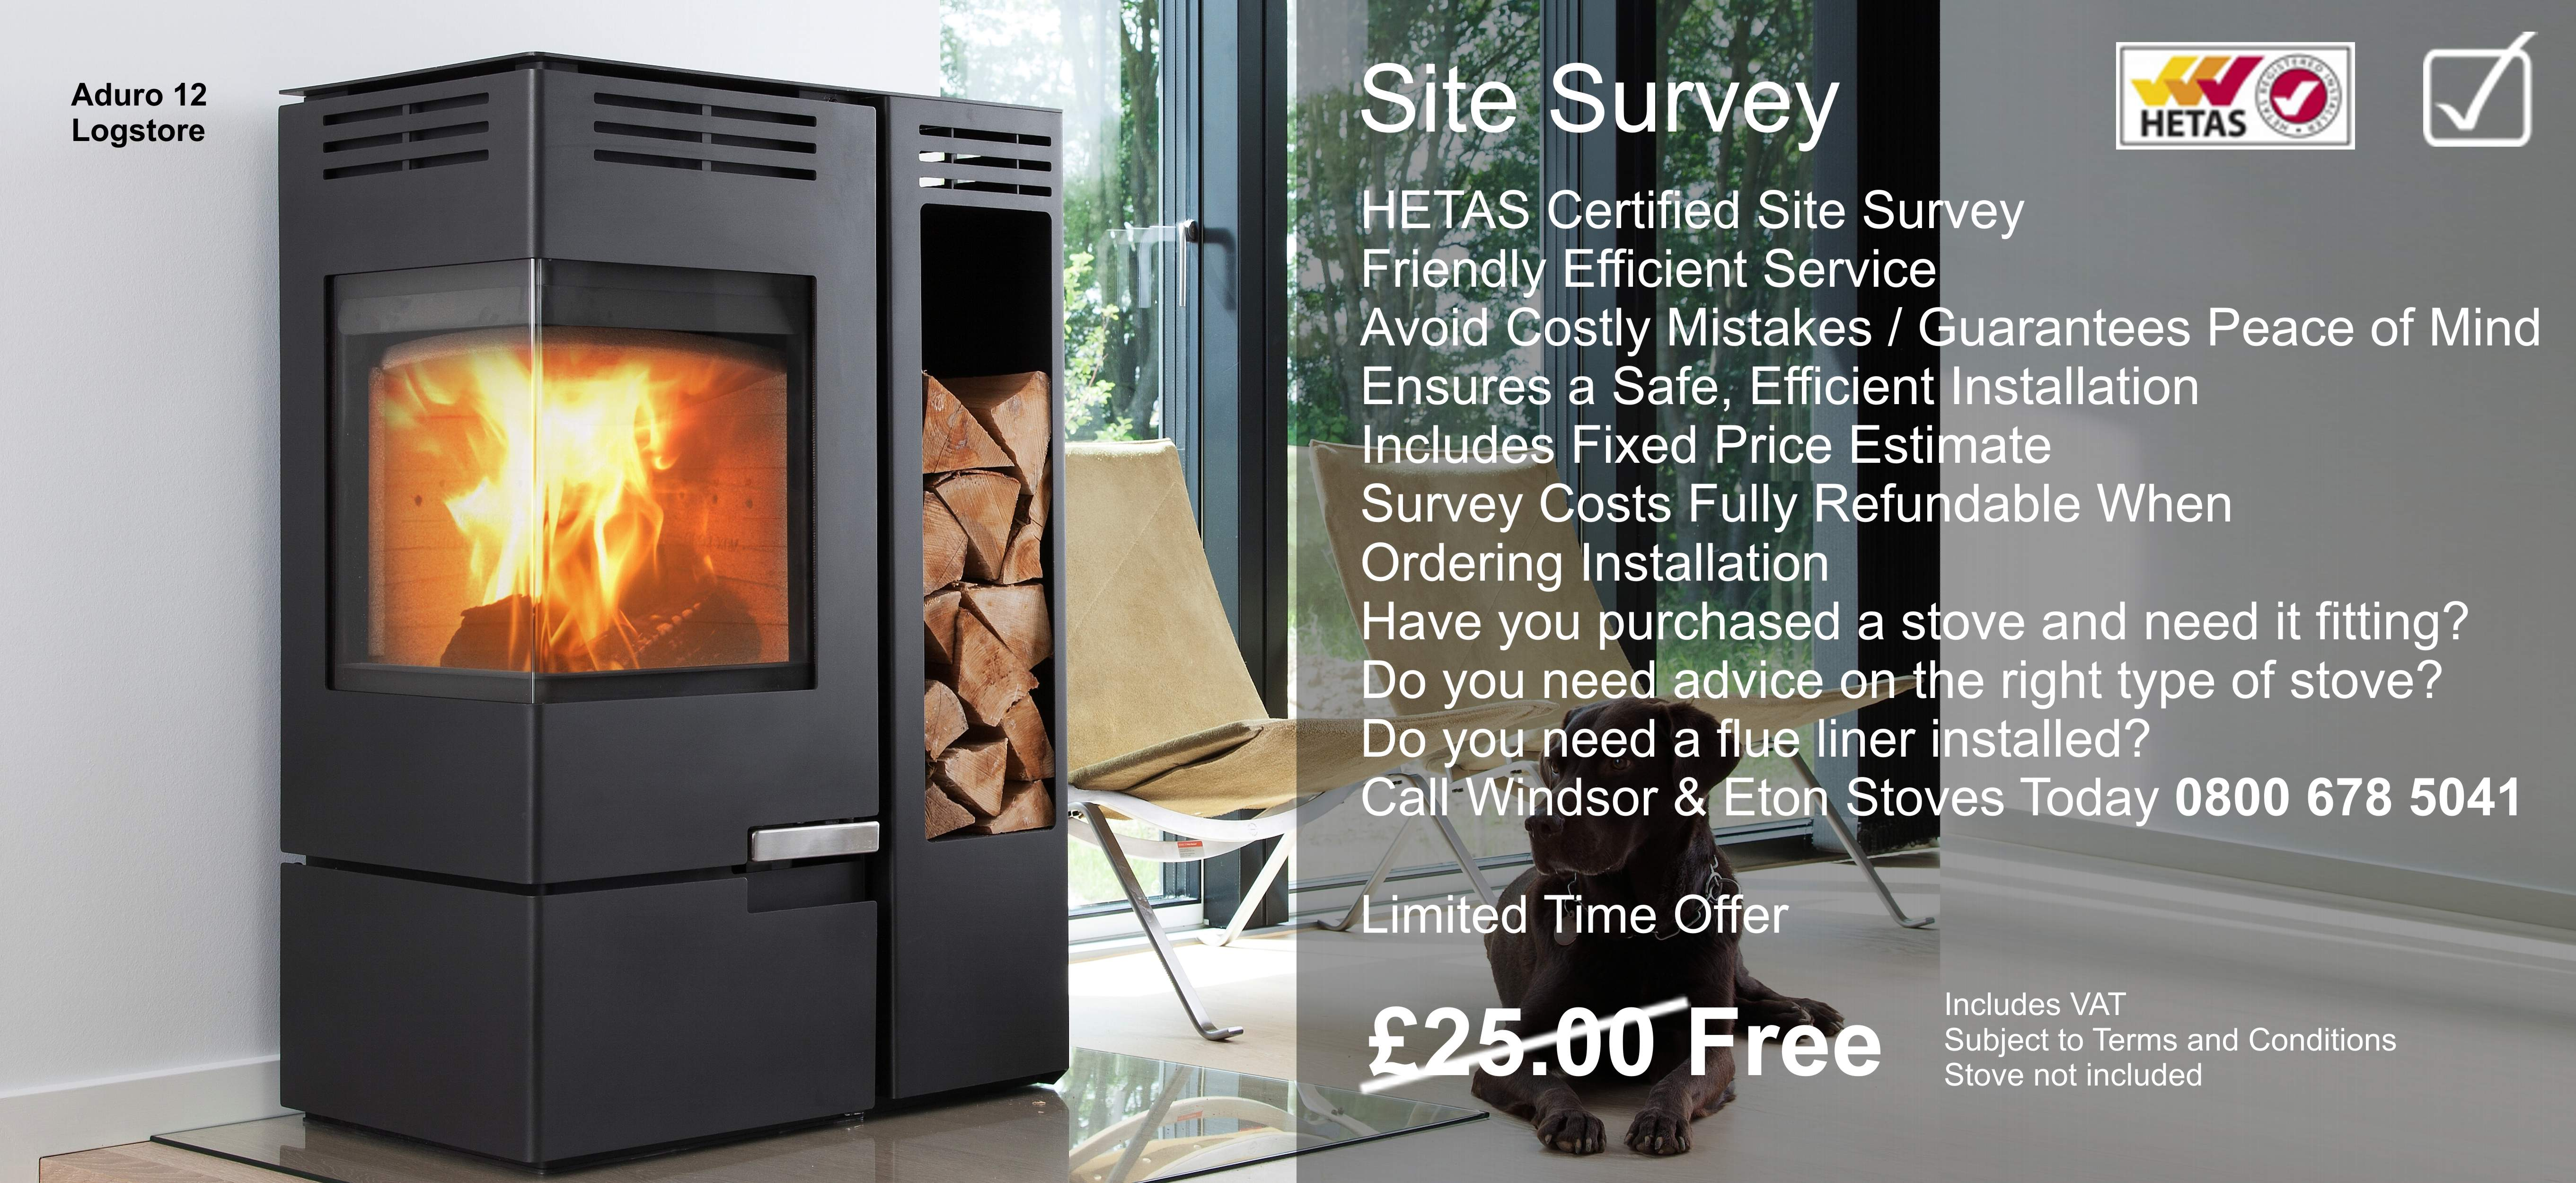 Outstanding Wood Burning Stove Installer Fixed Price Hetas Stove Installation  With Magnificent Fixed Price Hetas Stove Installation Free Site Survey Full Fireplace  Design And Build Services Stove Installation In Windsor With Amazing Gardening Vacancies Also Shops To Let In Welwyn Garden City In Addition Plants Vs Zombies Garden Warfare  And Plant Vs Zombies Garden Warfare Pc As Well As Restaurant In Garden By The Bay Additionally Leeds Garden Party From Windsorandetonstovescouk With   Magnificent Wood Burning Stove Installer Fixed Price Hetas Stove Installation  With Amazing Fixed Price Hetas Stove Installation Free Site Survey Full Fireplace  Design And Build Services Stove Installation In Windsor And Outstanding Gardening Vacancies Also Shops To Let In Welwyn Garden City In Addition Plants Vs Zombies Garden Warfare  From Windsorandetonstovescouk